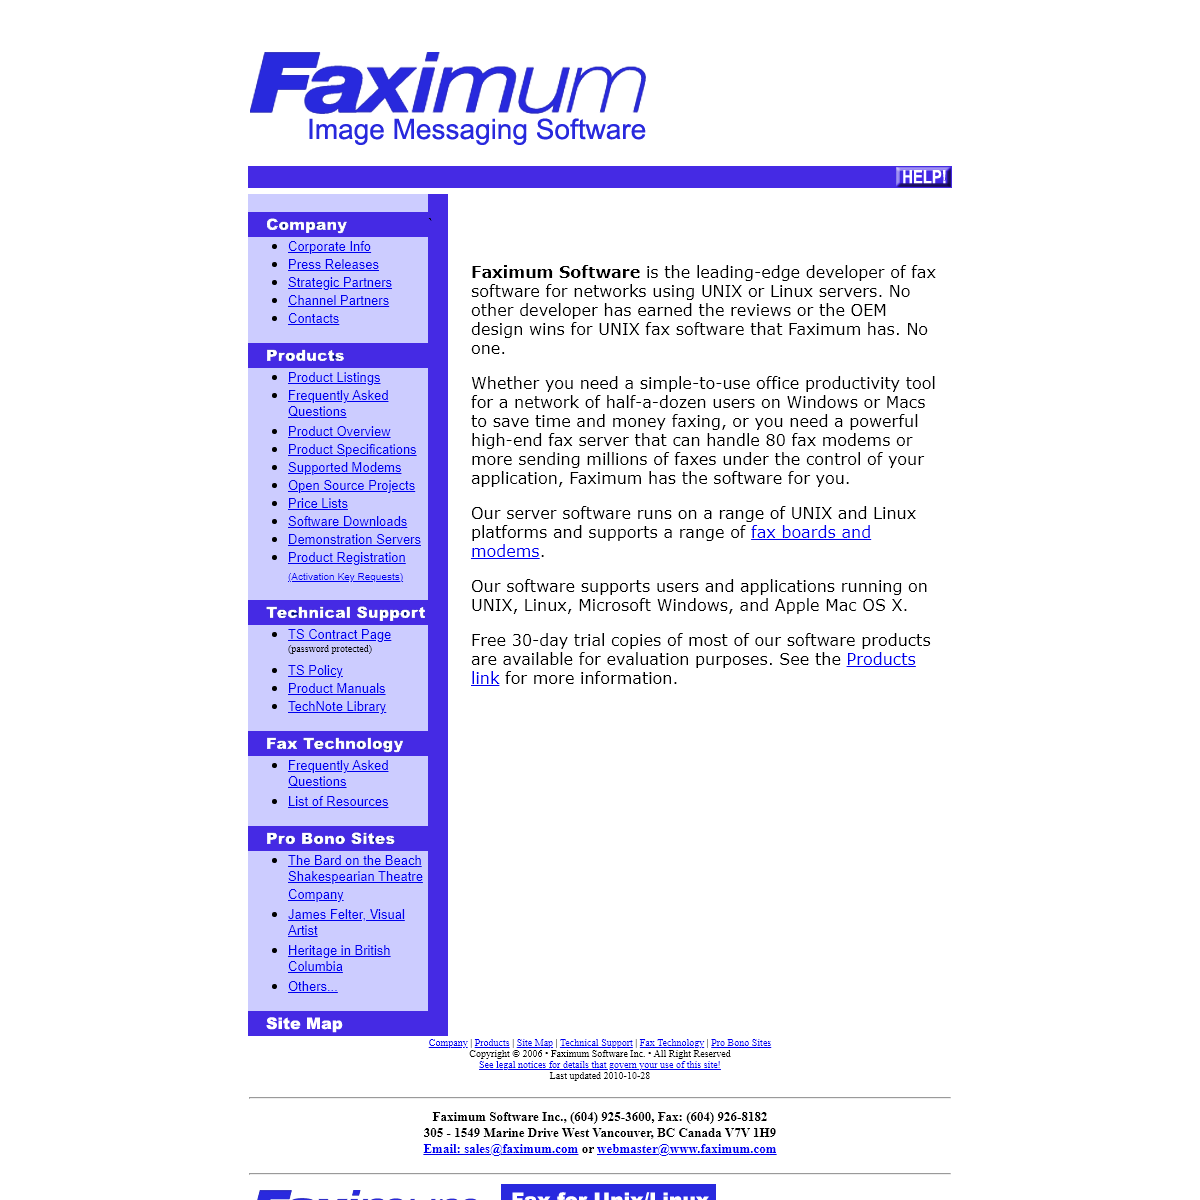 Faximum Software Inc. - Home Page